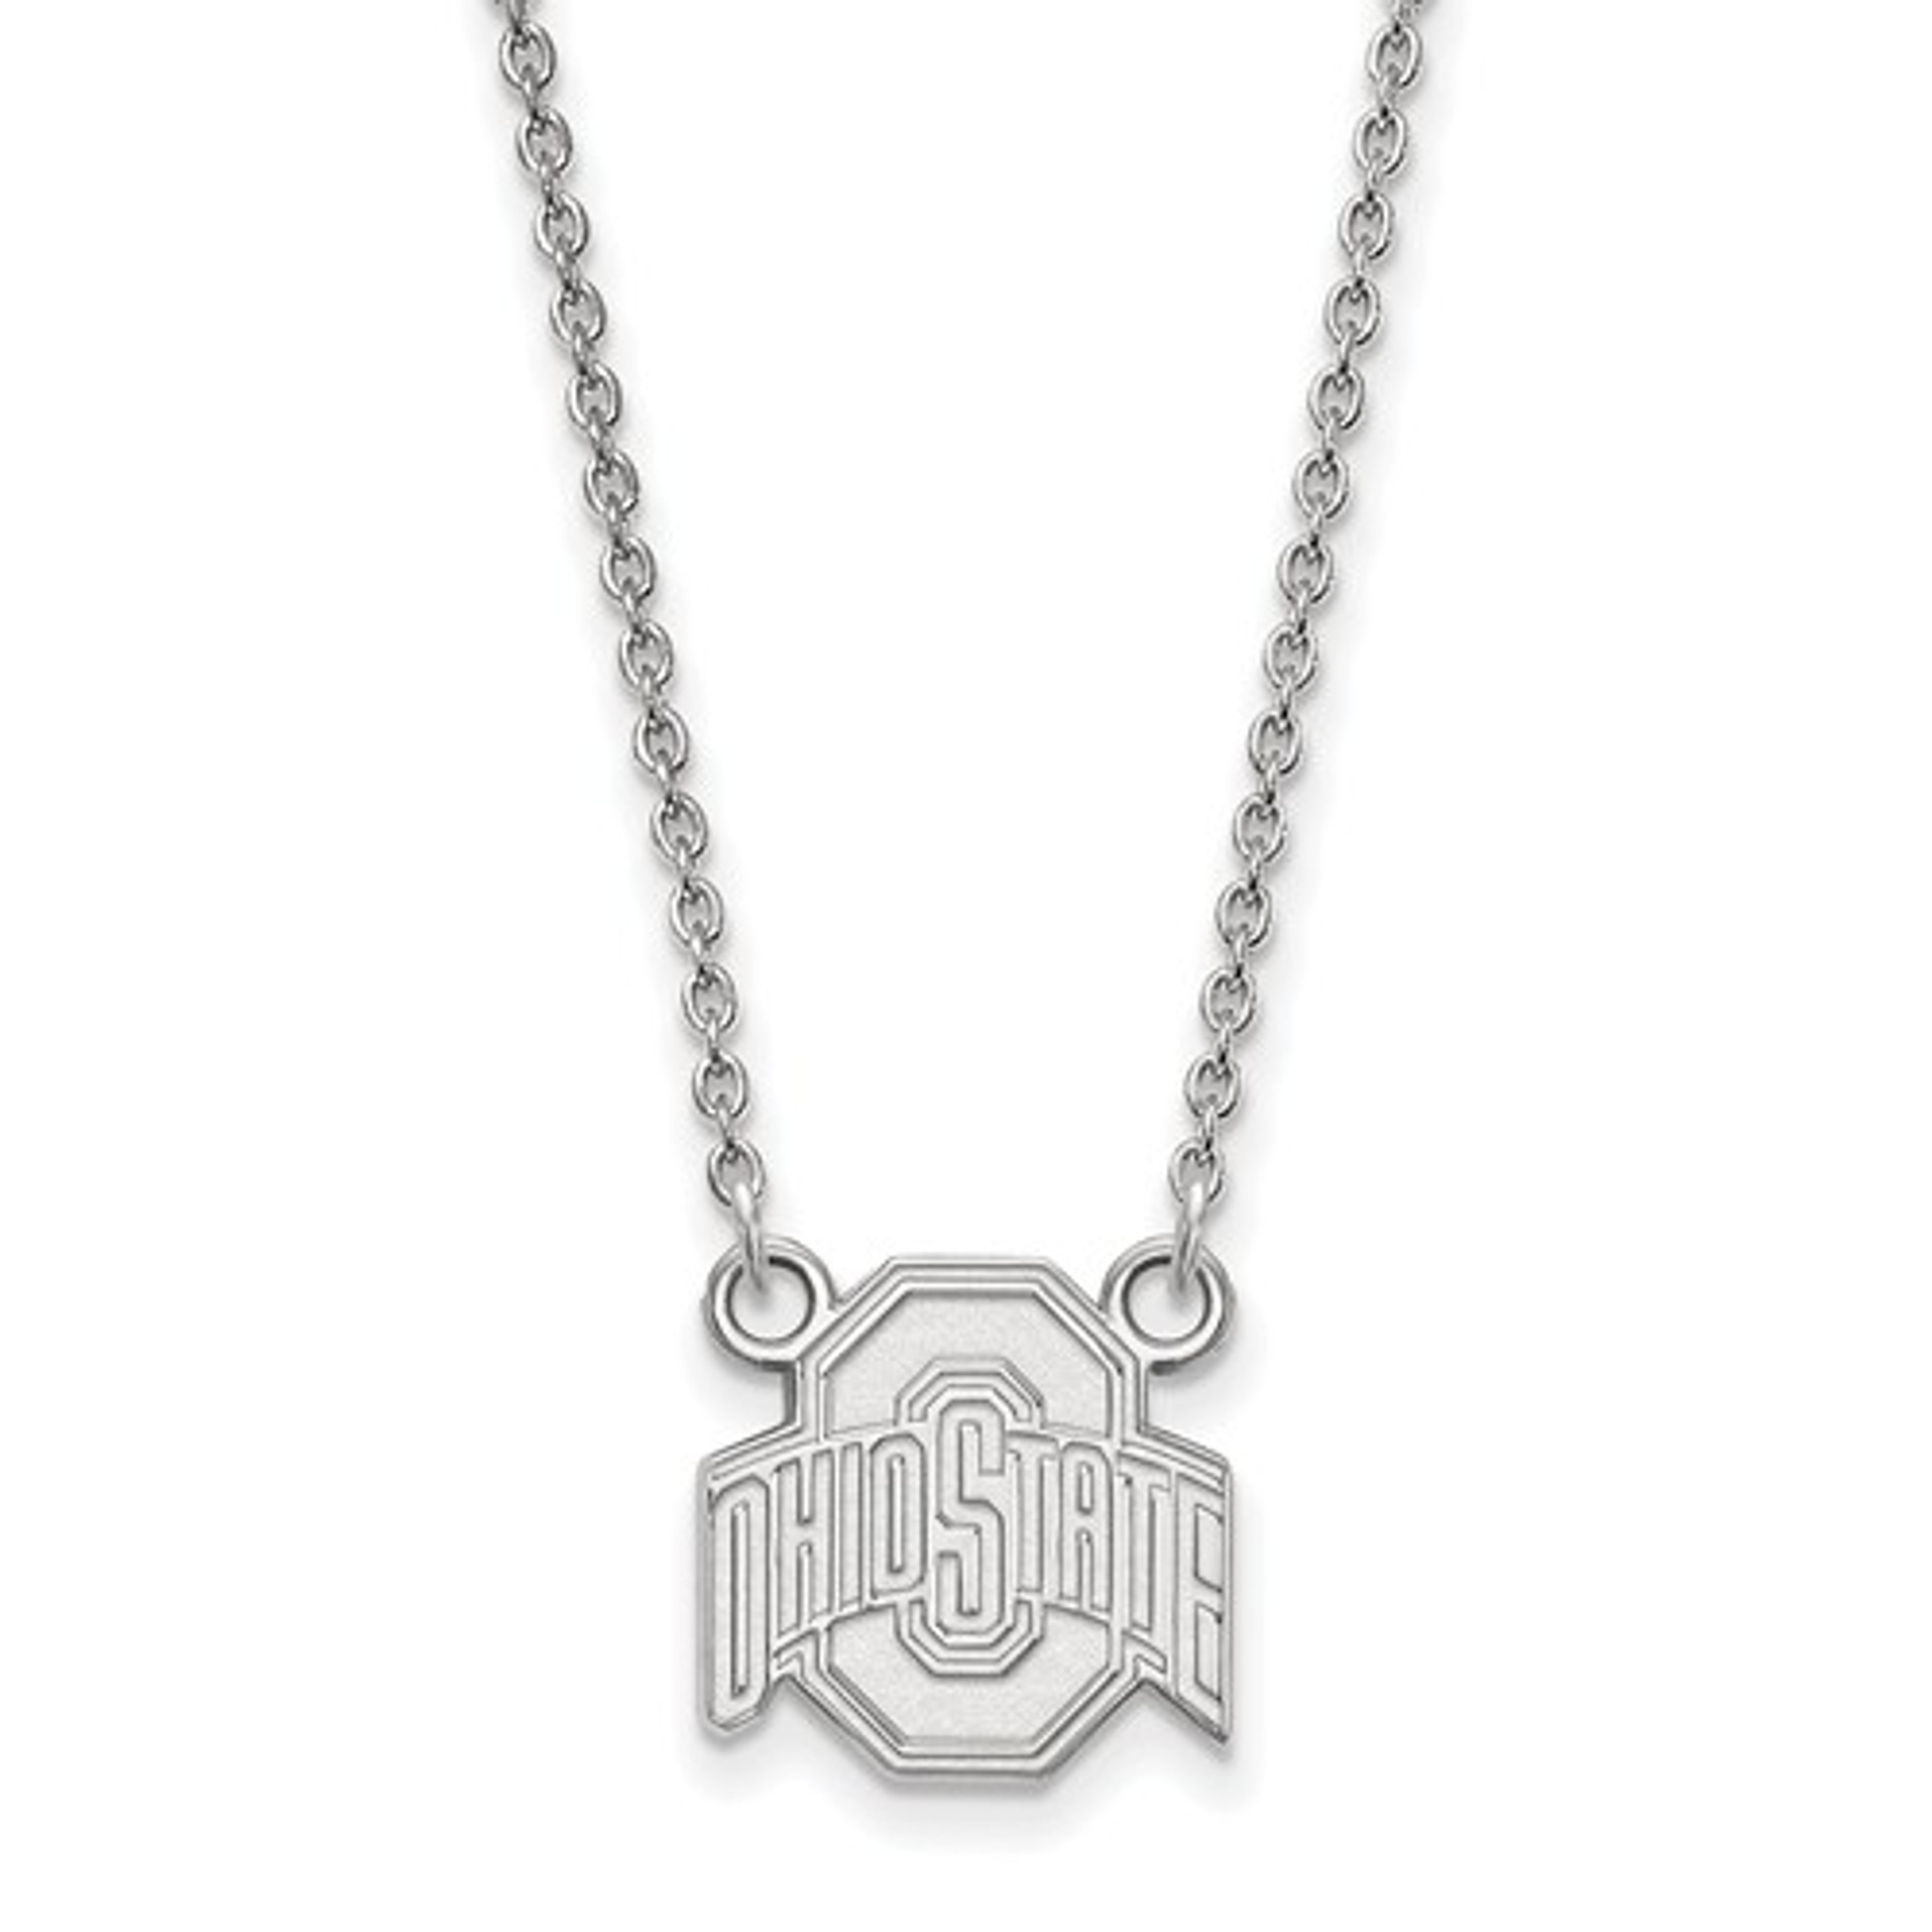 Ohio state buckeyes sterling silver pendant necklace ohio state buckeyes sterling silver pendant necklace logo art ss015osu 18 aloadofball Image collections